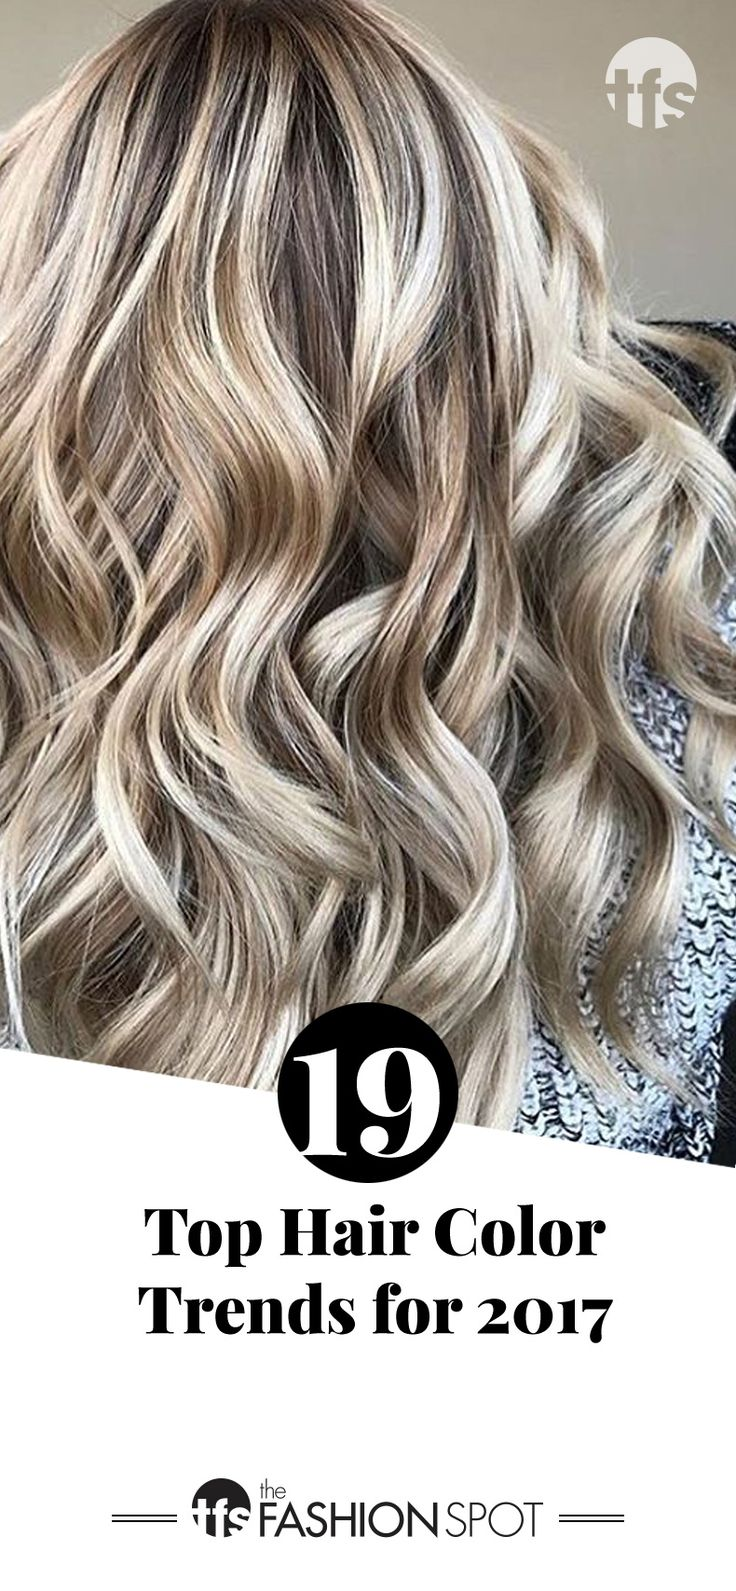 These Will Be the Most Popular Hair Colors of 2017, According to Top Stylists